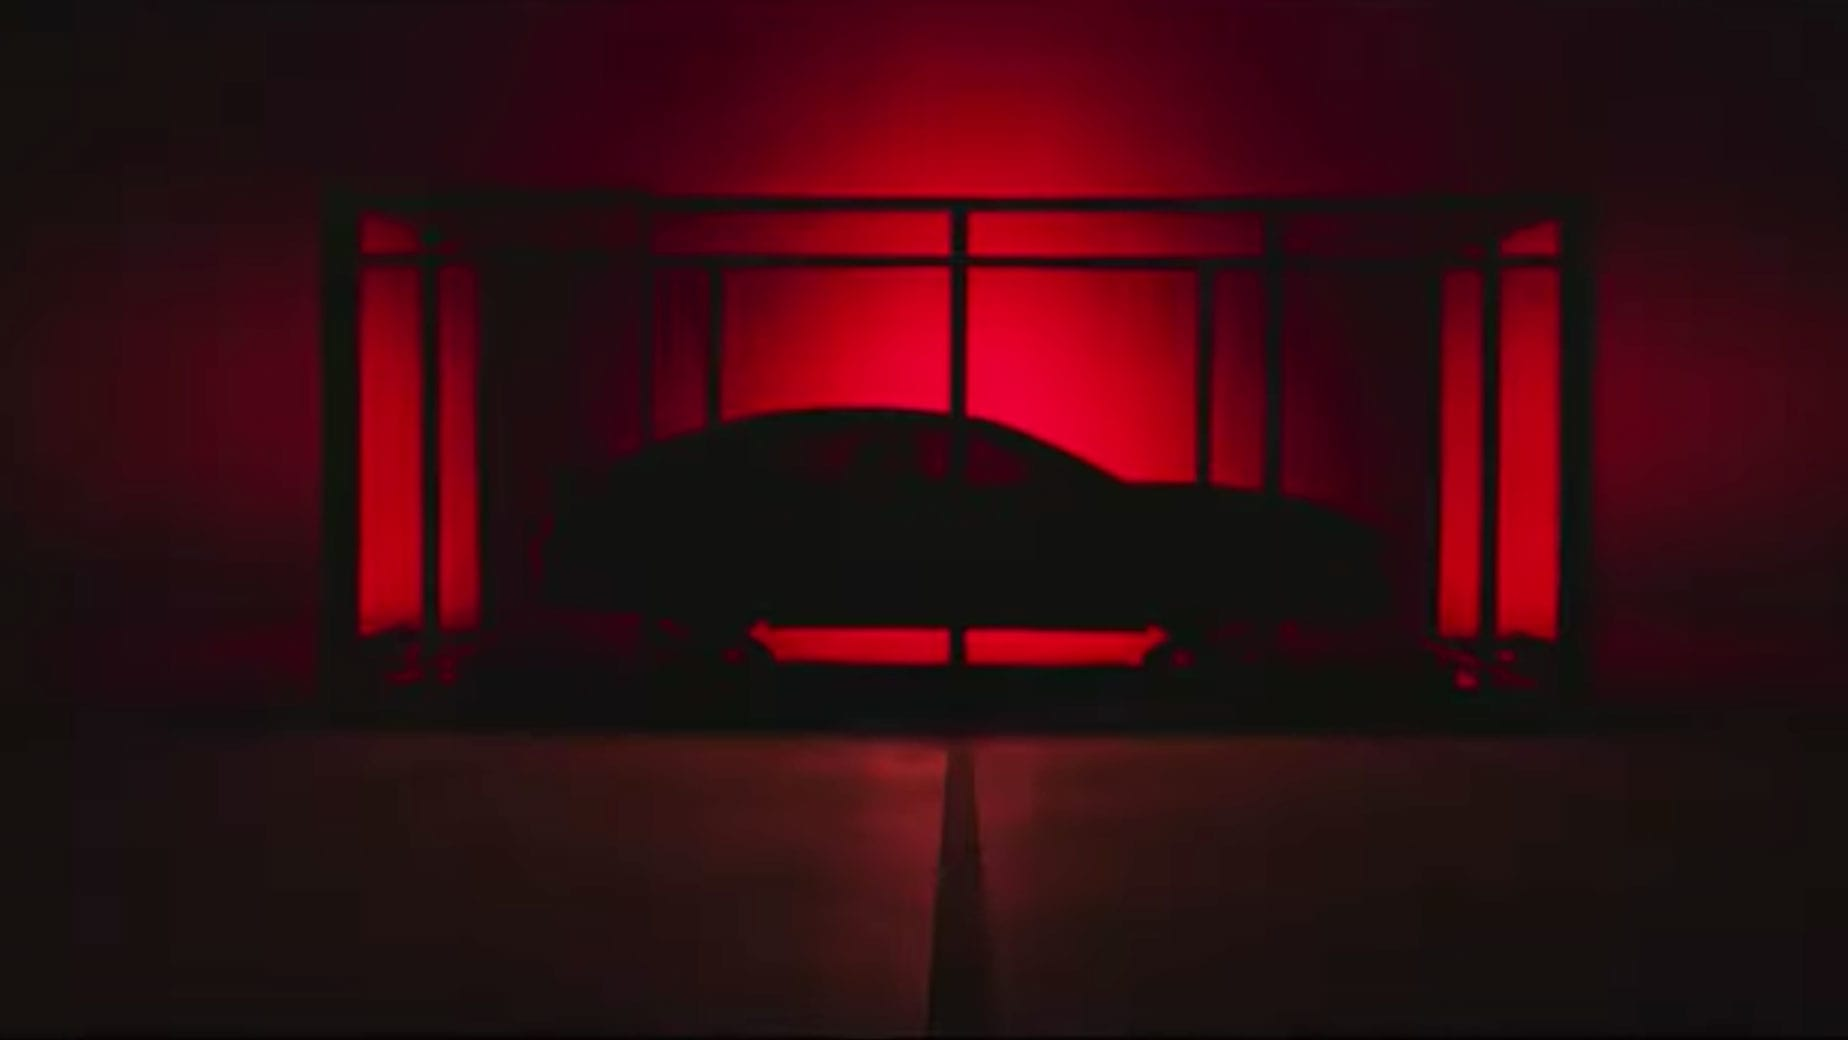 Acura to debut sporty Type S concept car at Pebble Beach car show